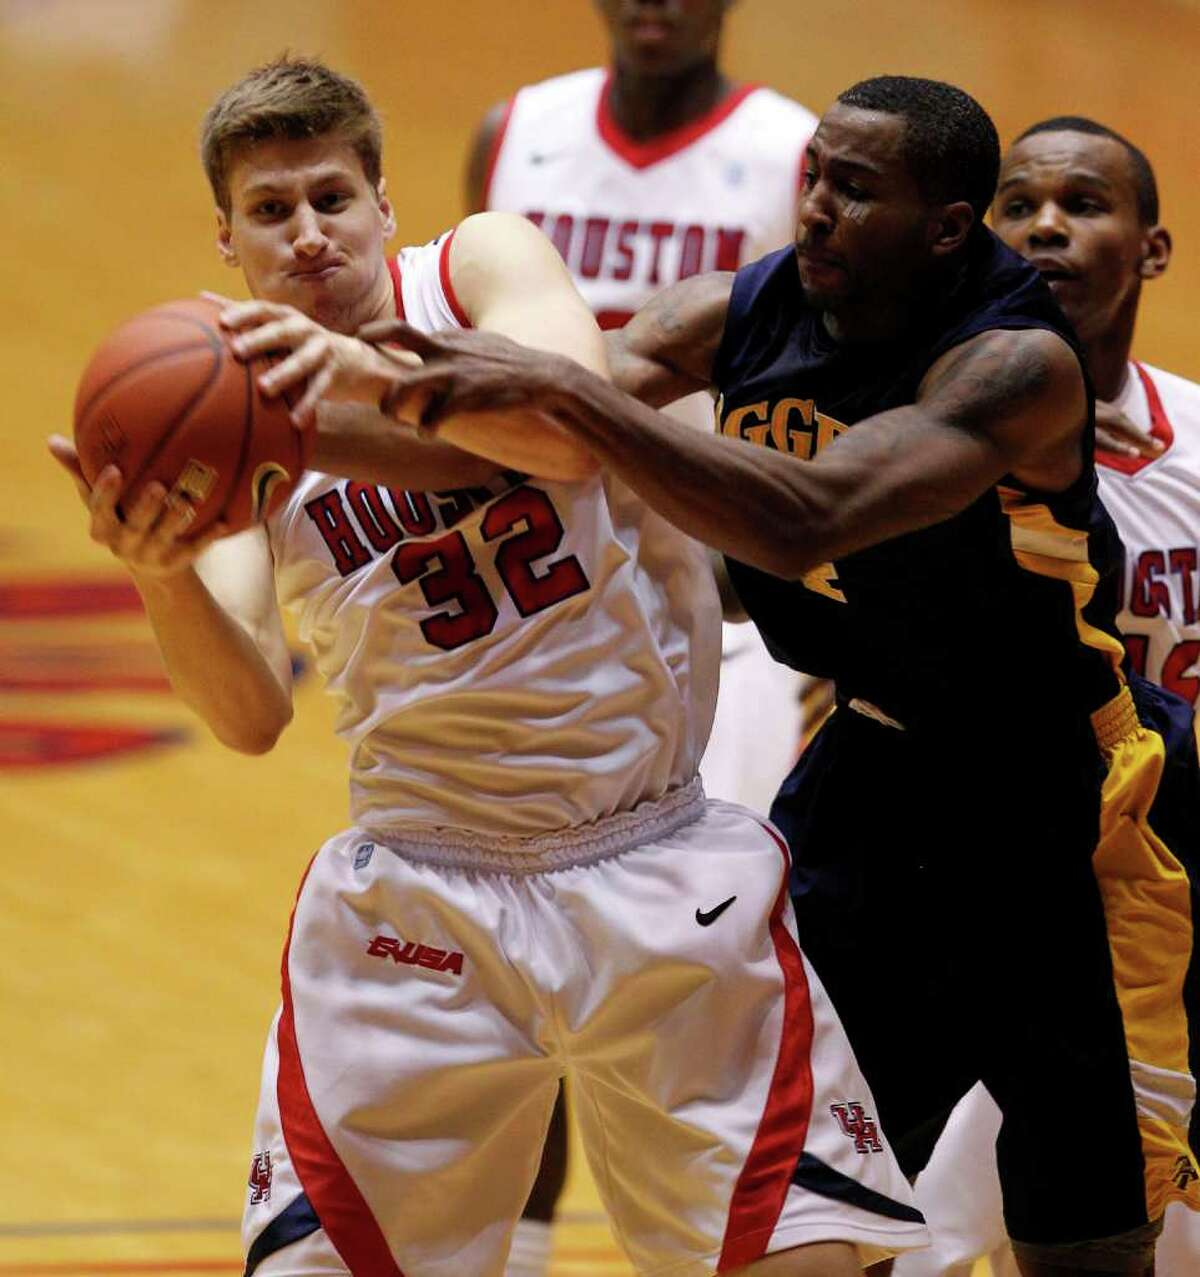 Kirk Van Slyke, left, and the Cougars had to fight to fend off another close game in a victory over DaMetrius Upchurch and North Carolina A&T.